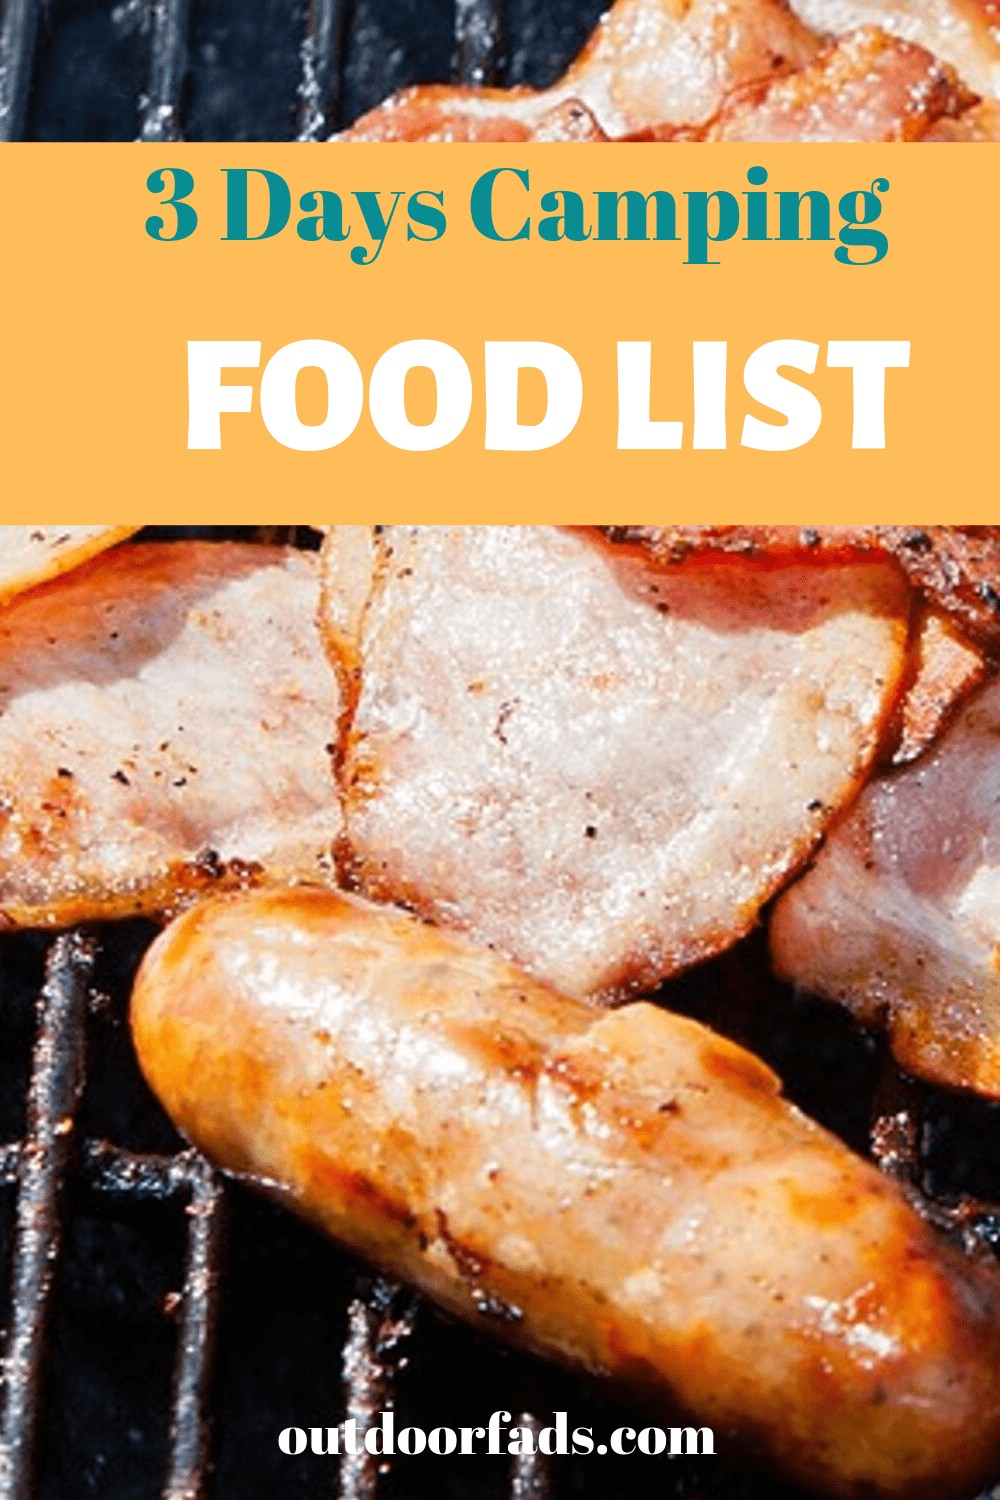 Camping food list for 3 days